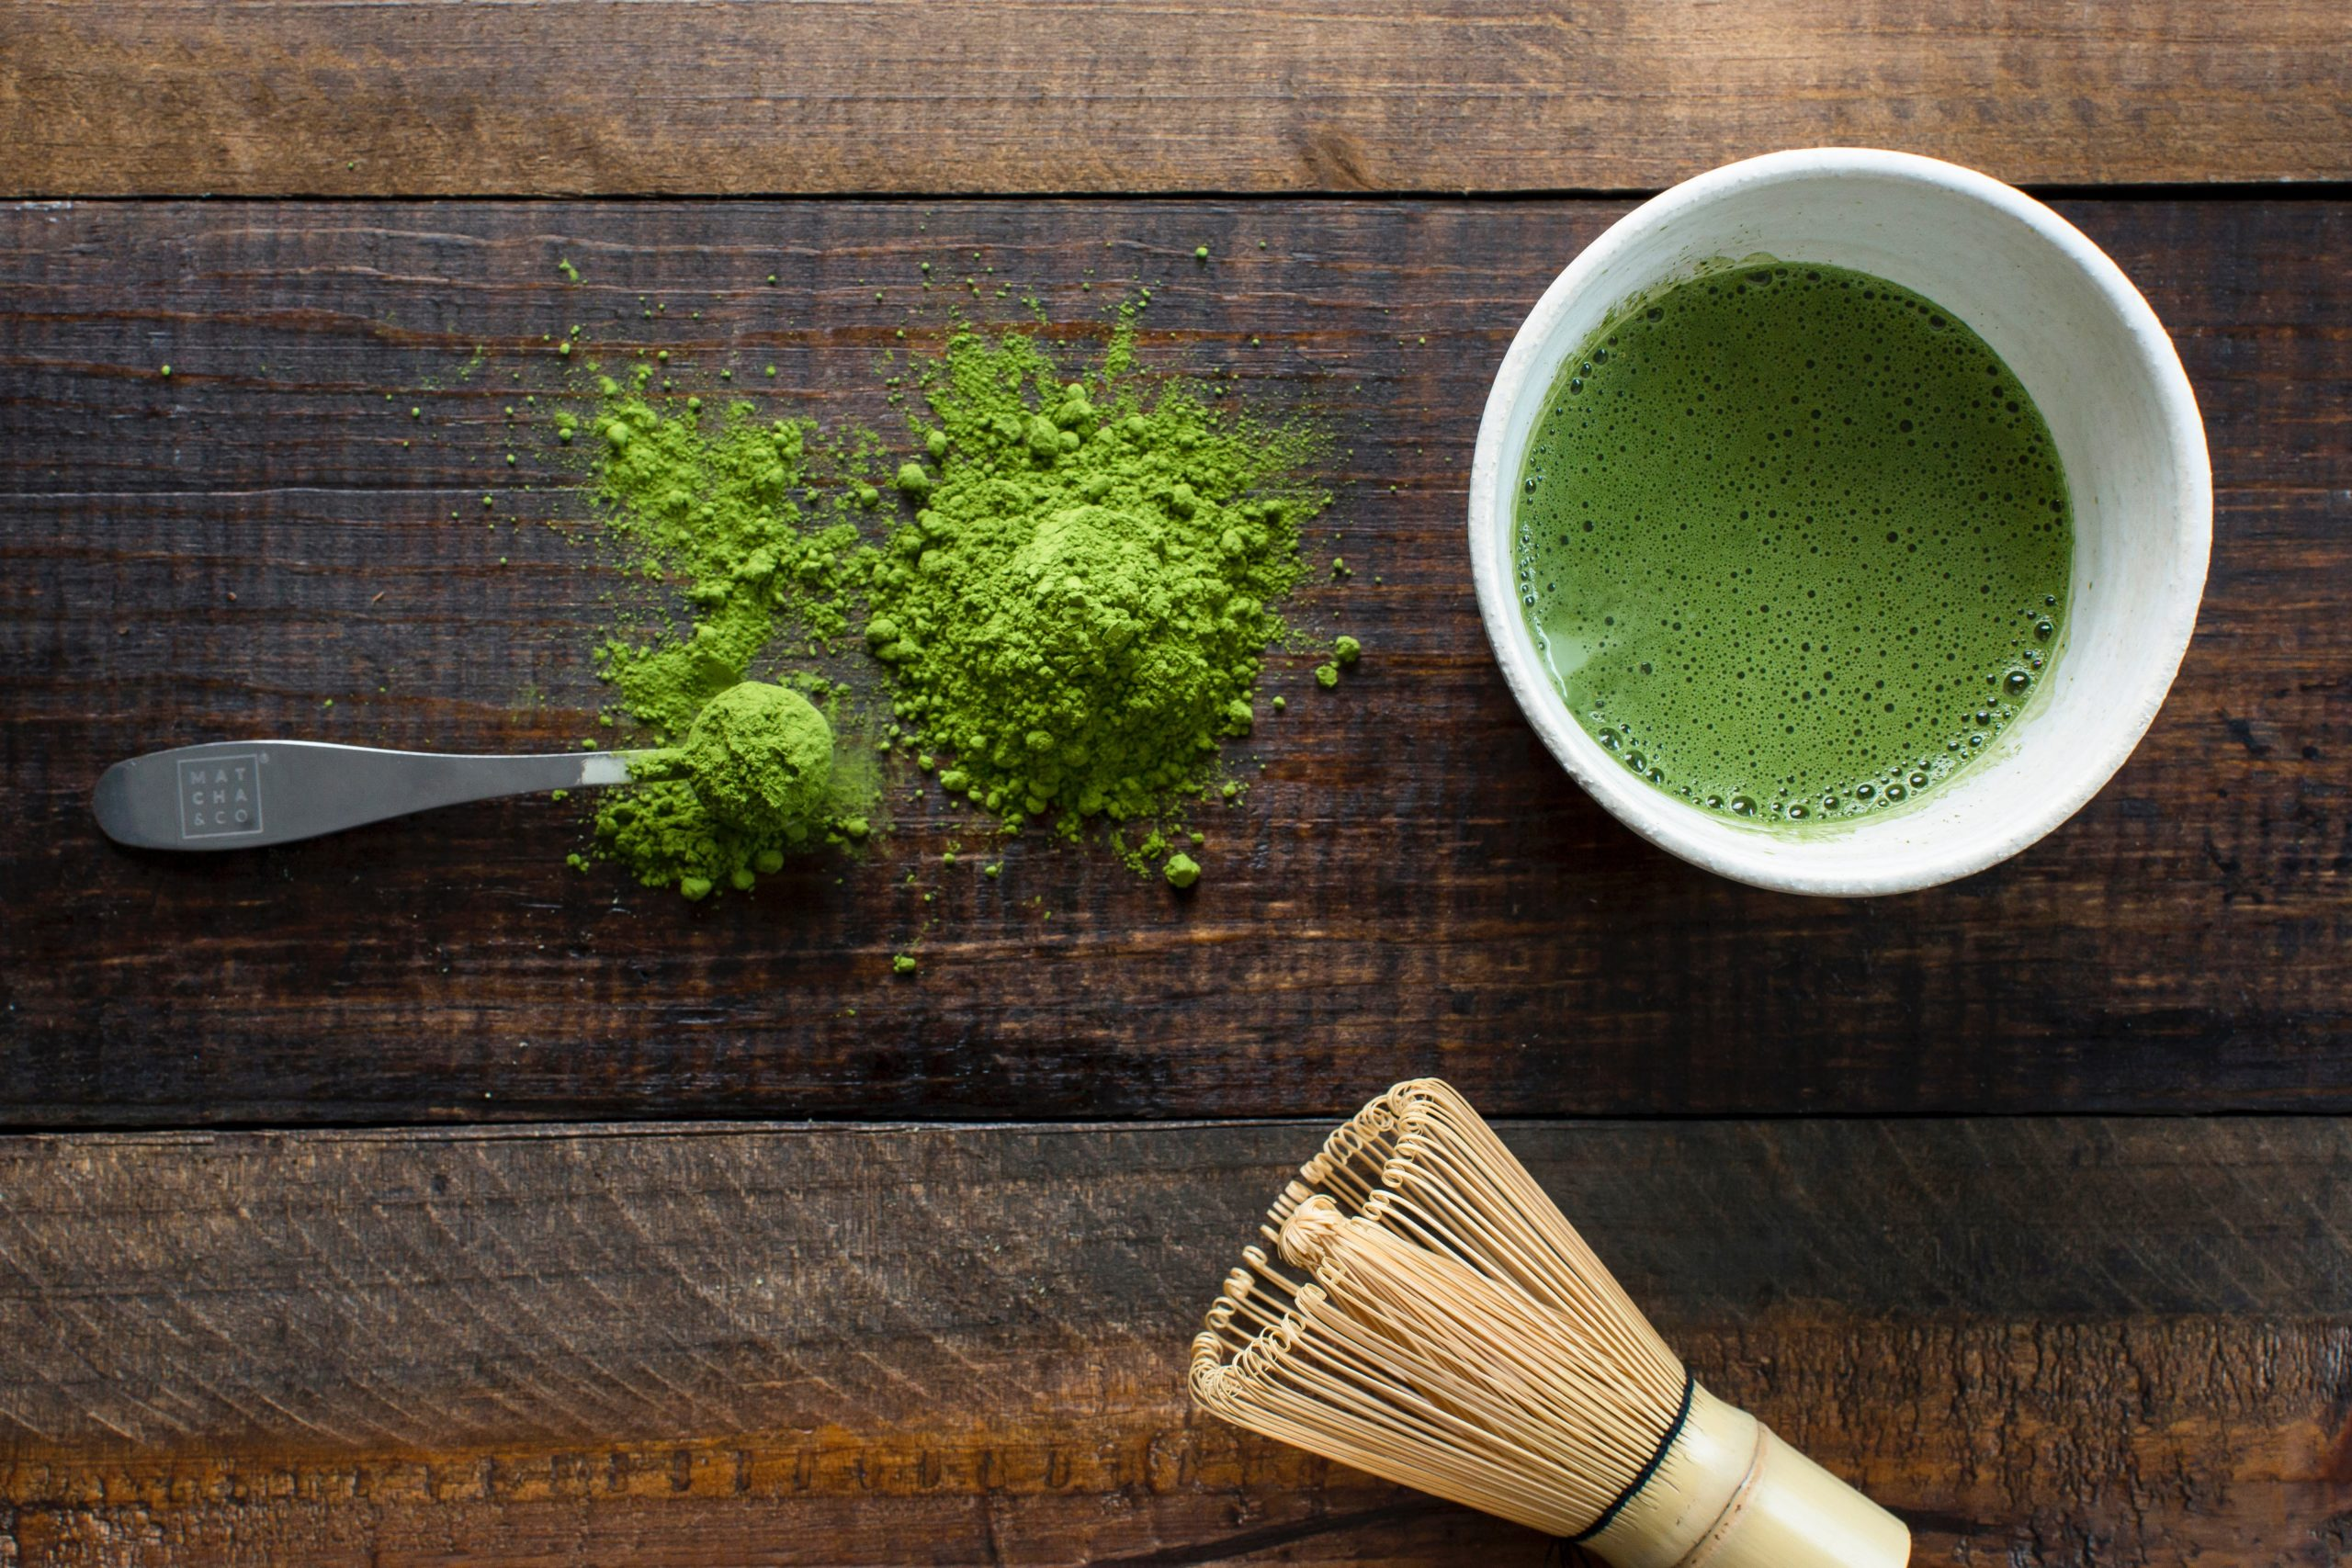 What Do You Need to Know about Green Tea